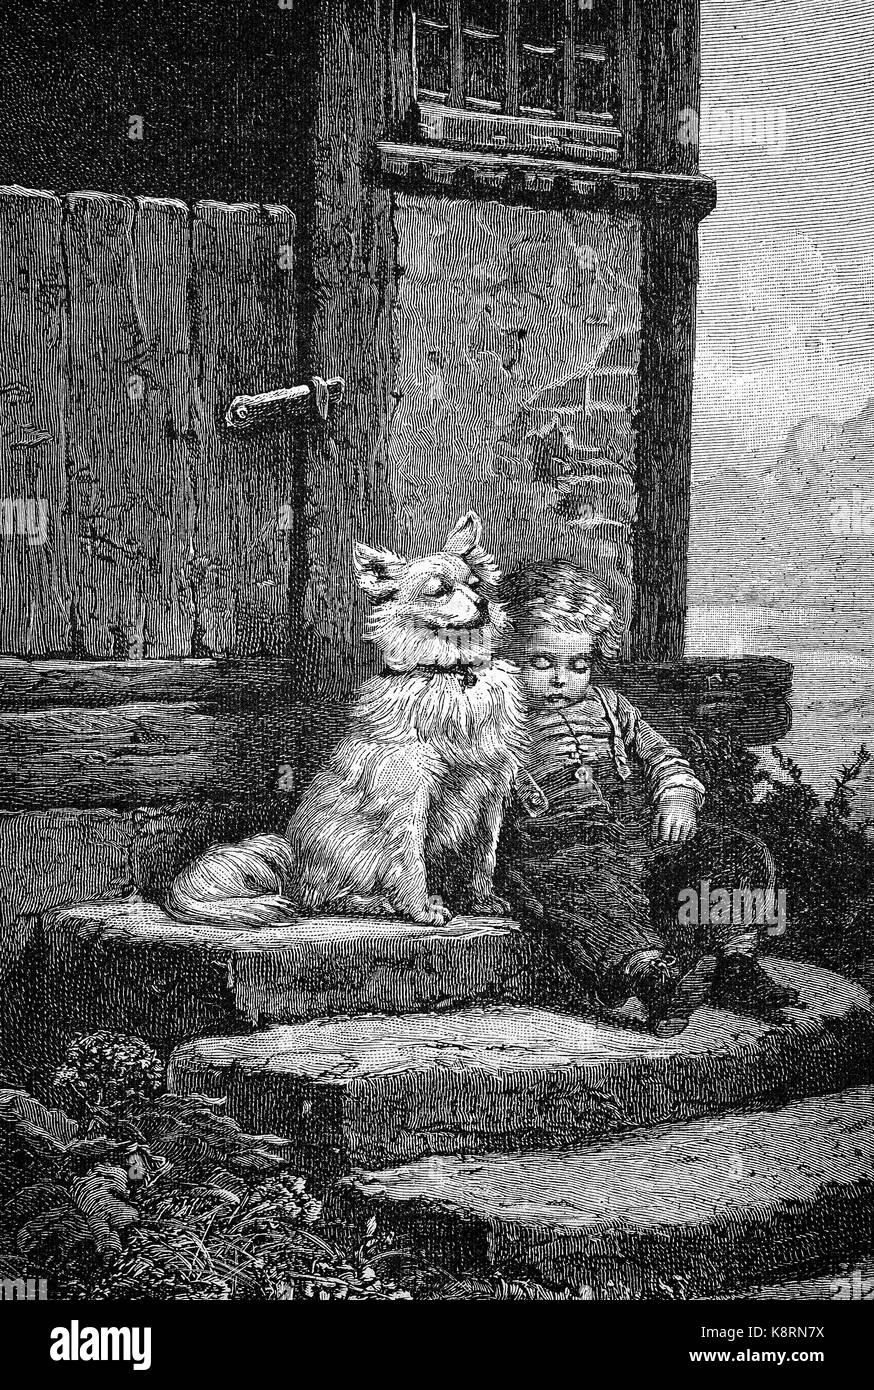 The guardian, dog is guarding the little boy who has fallen asleep on the stairs, Der Wächter, Hund bewacht - Stock Image